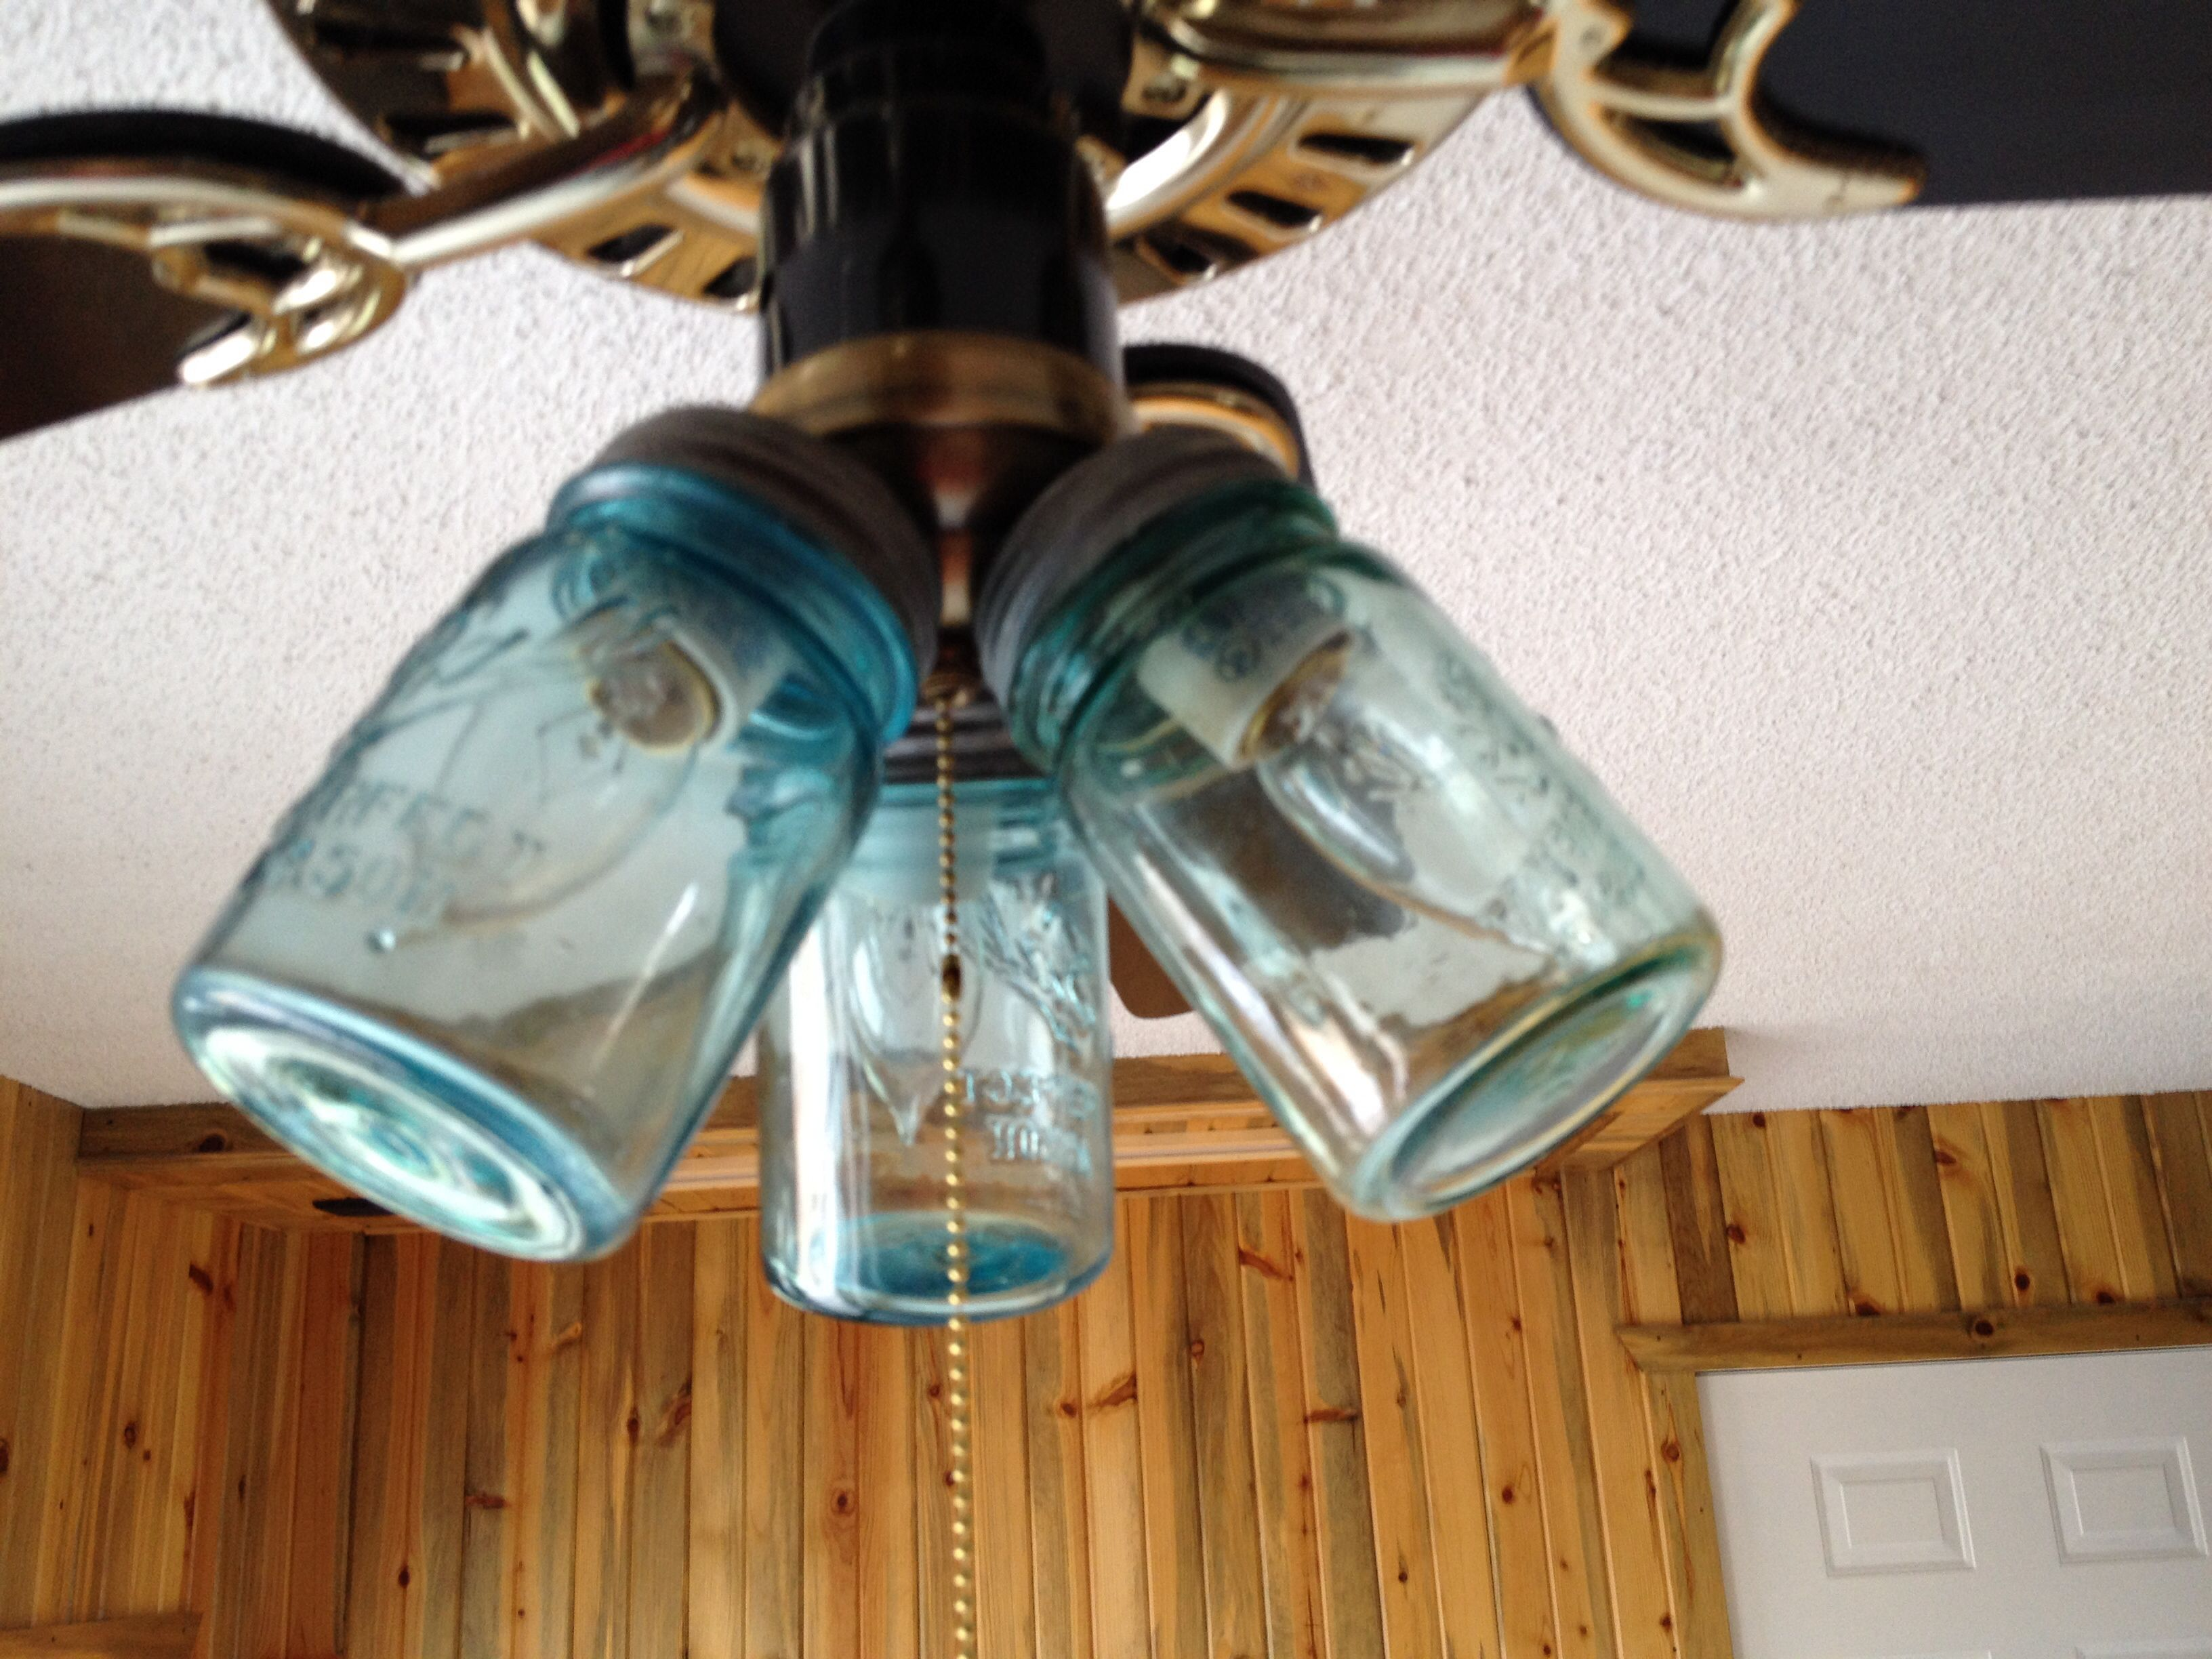 Mason jar ceiling fan light covers Home Sweet Home